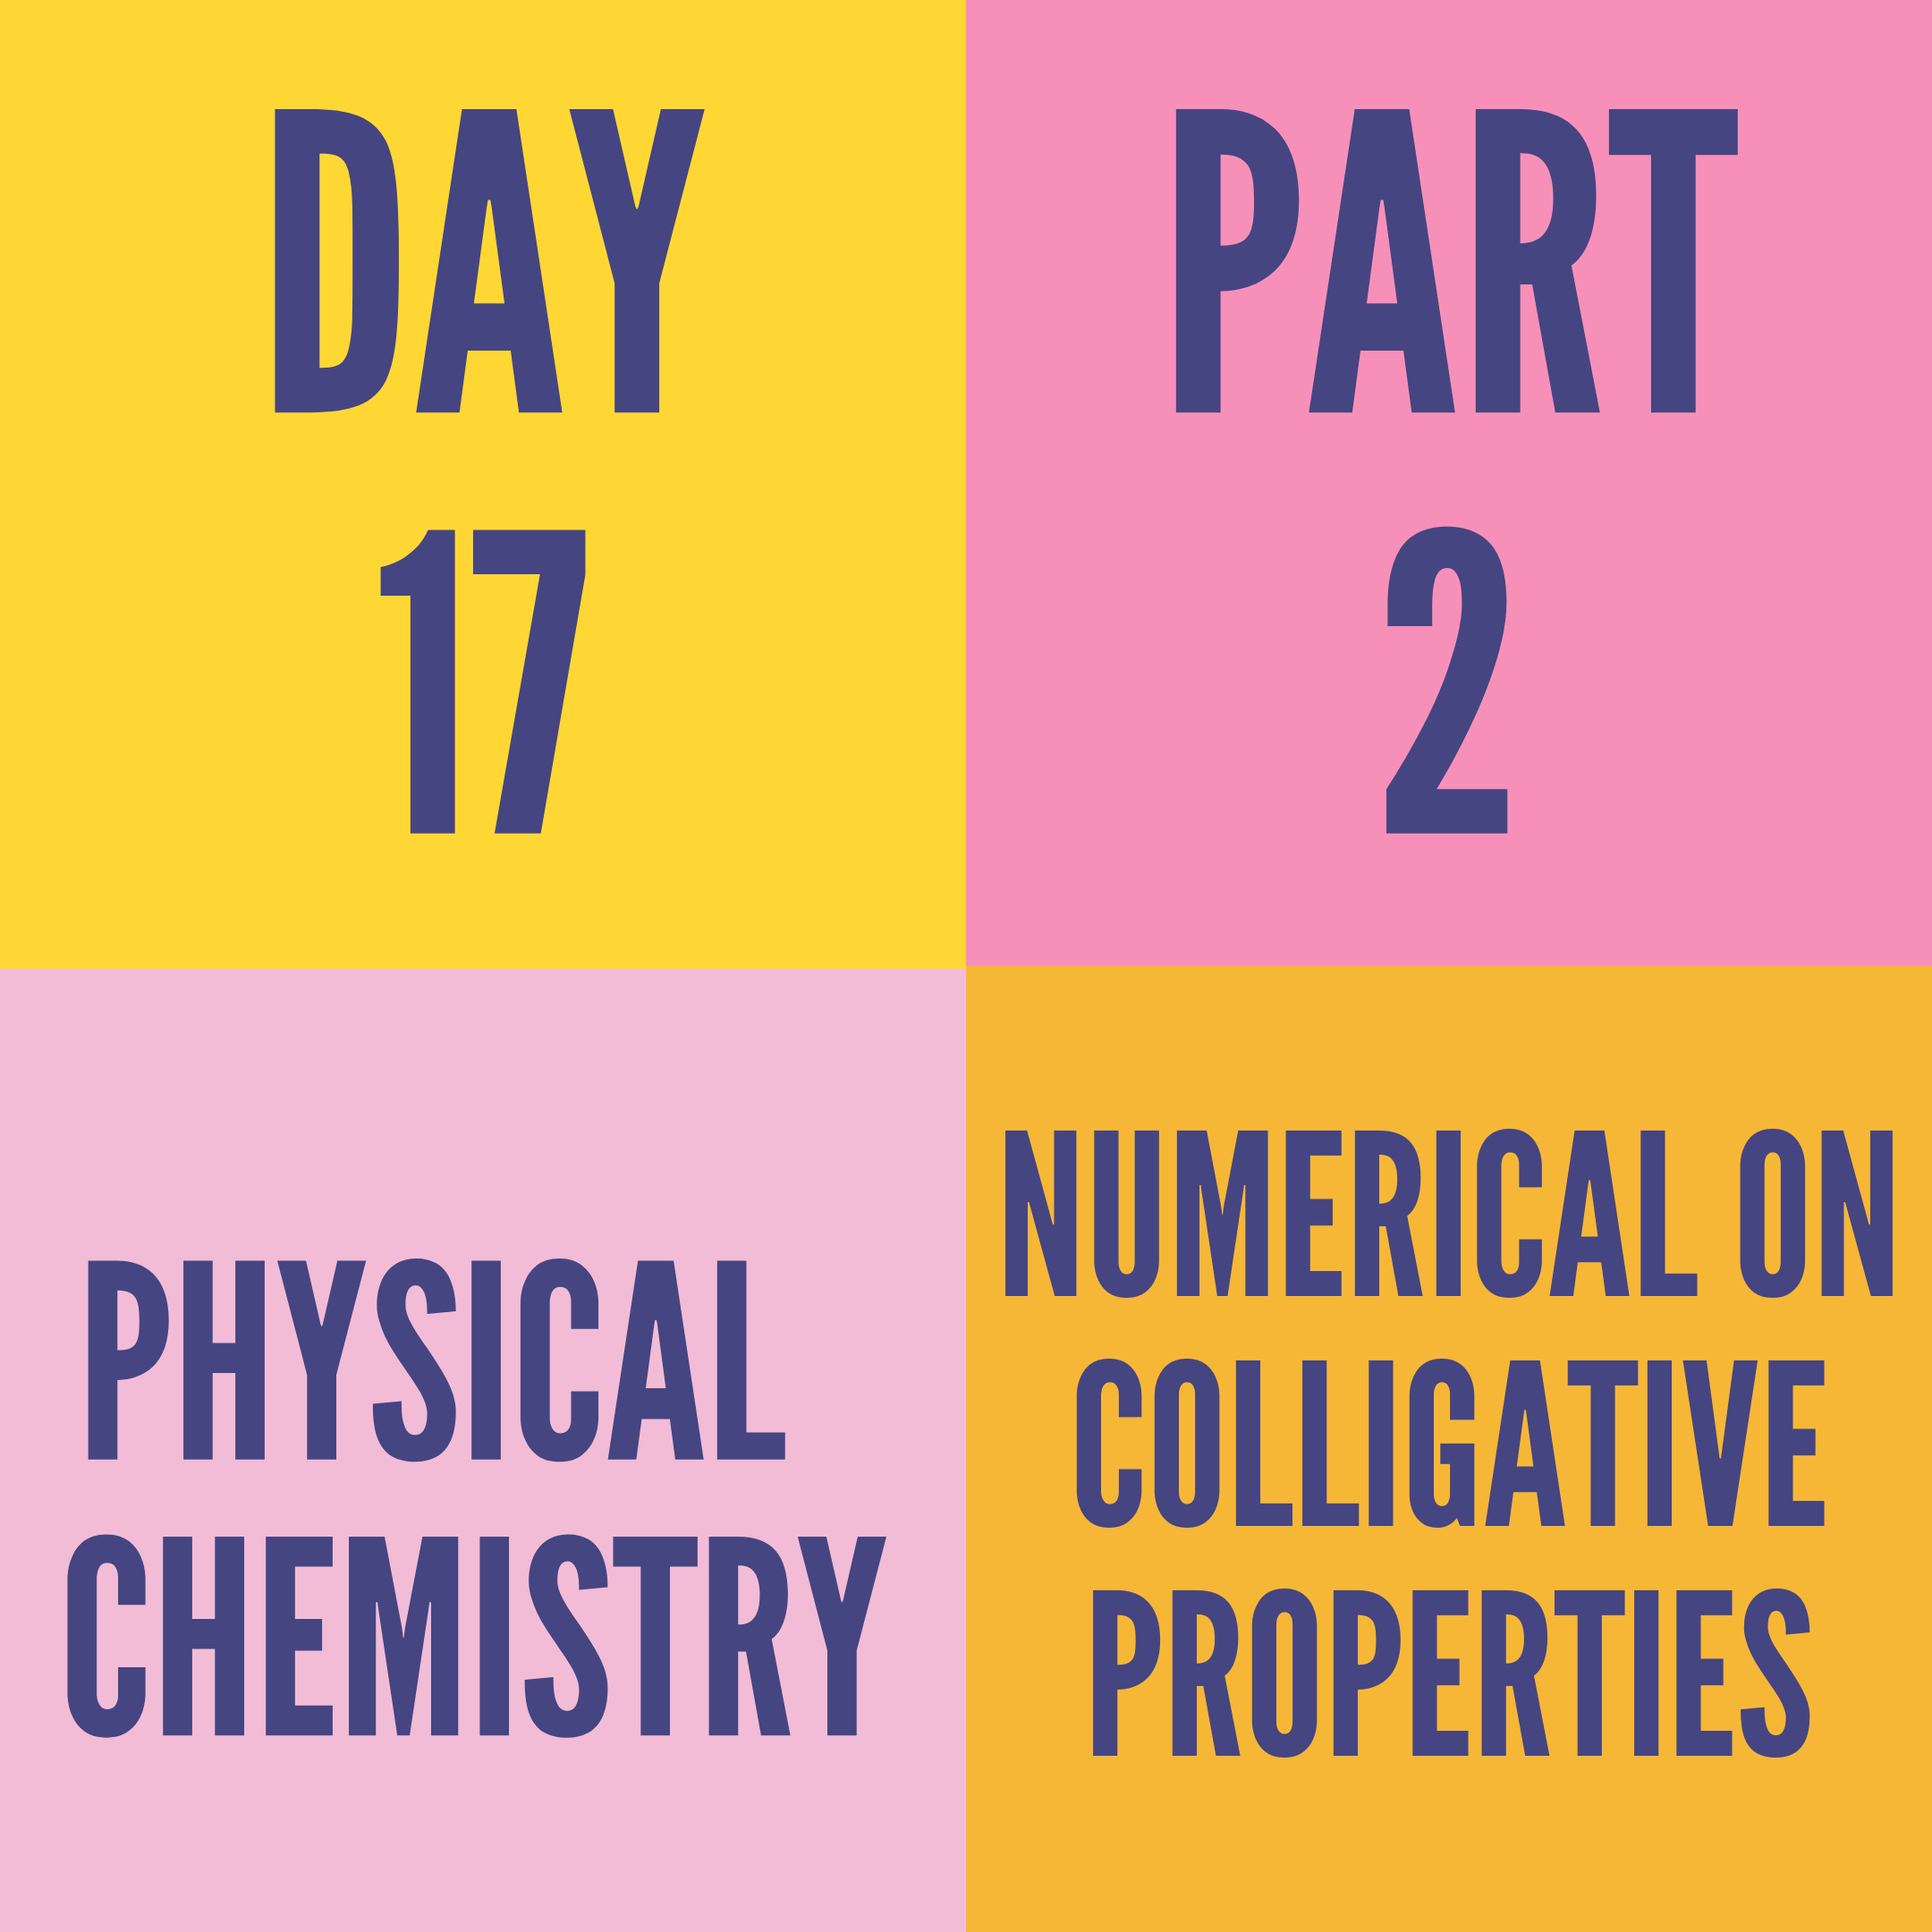 DAY-17  PART-2 NUMERICAL ON COLLIGATIVE PROPERTIES